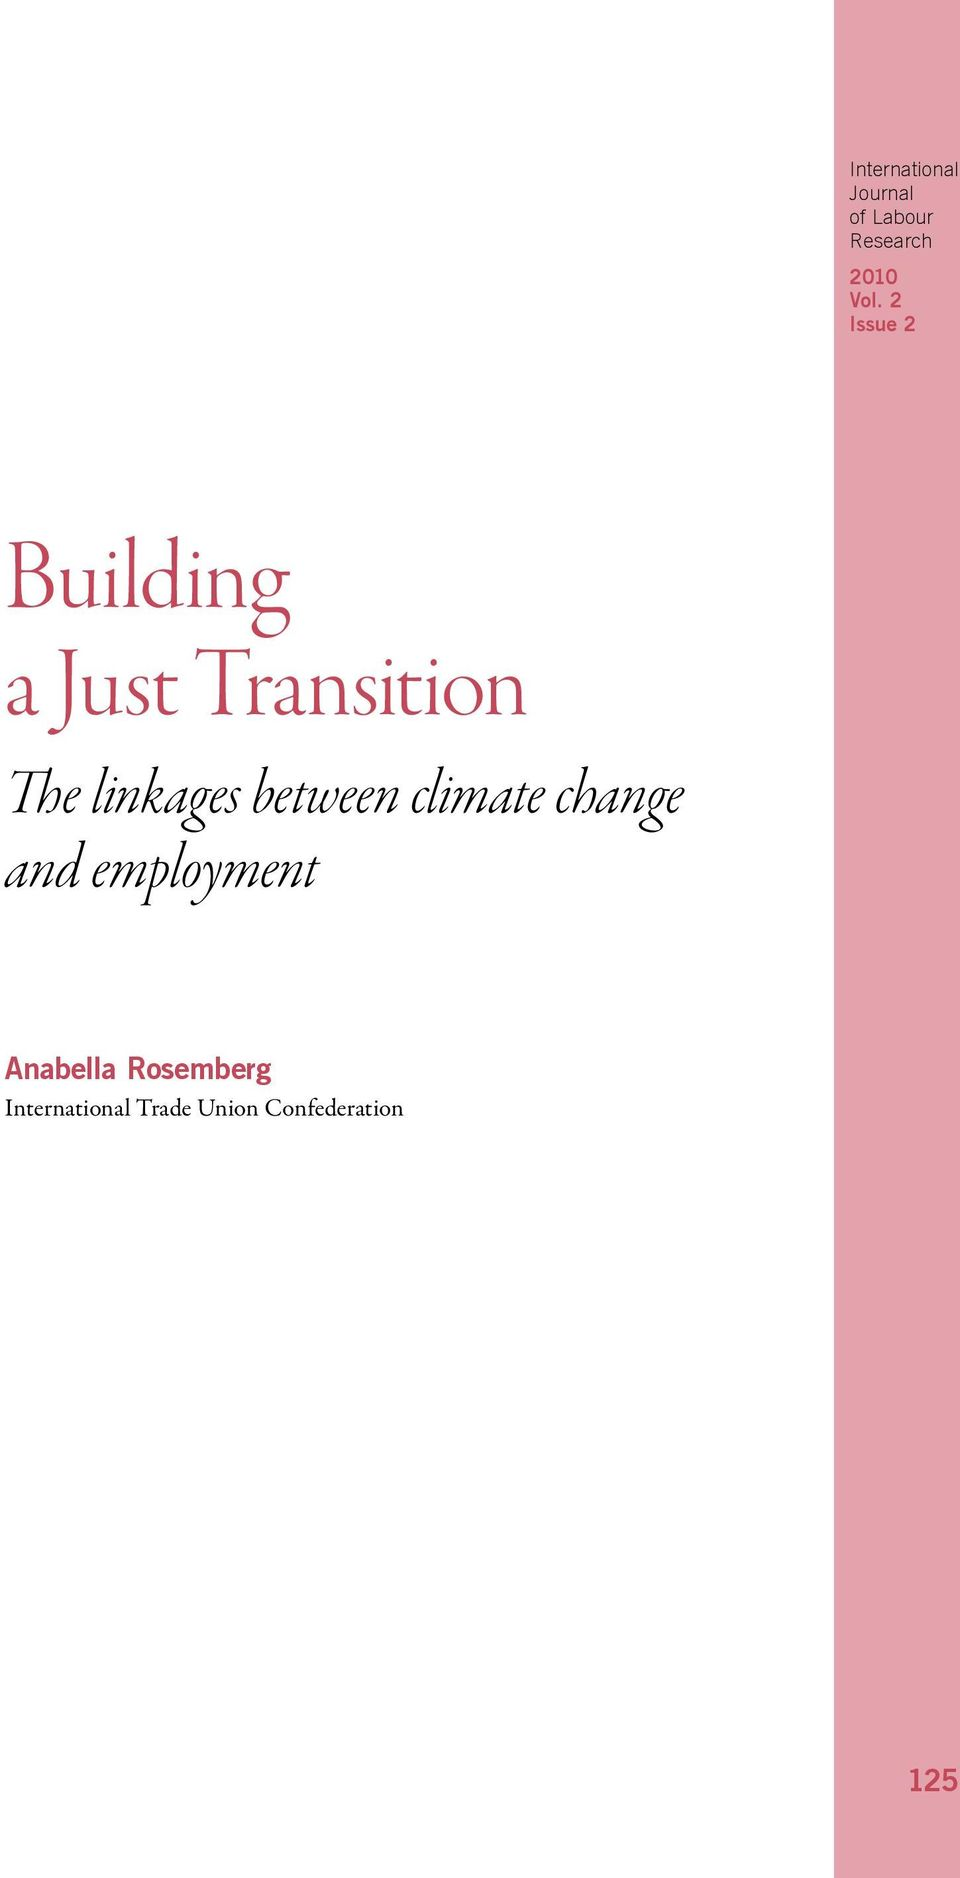 climate change and employment Anabella